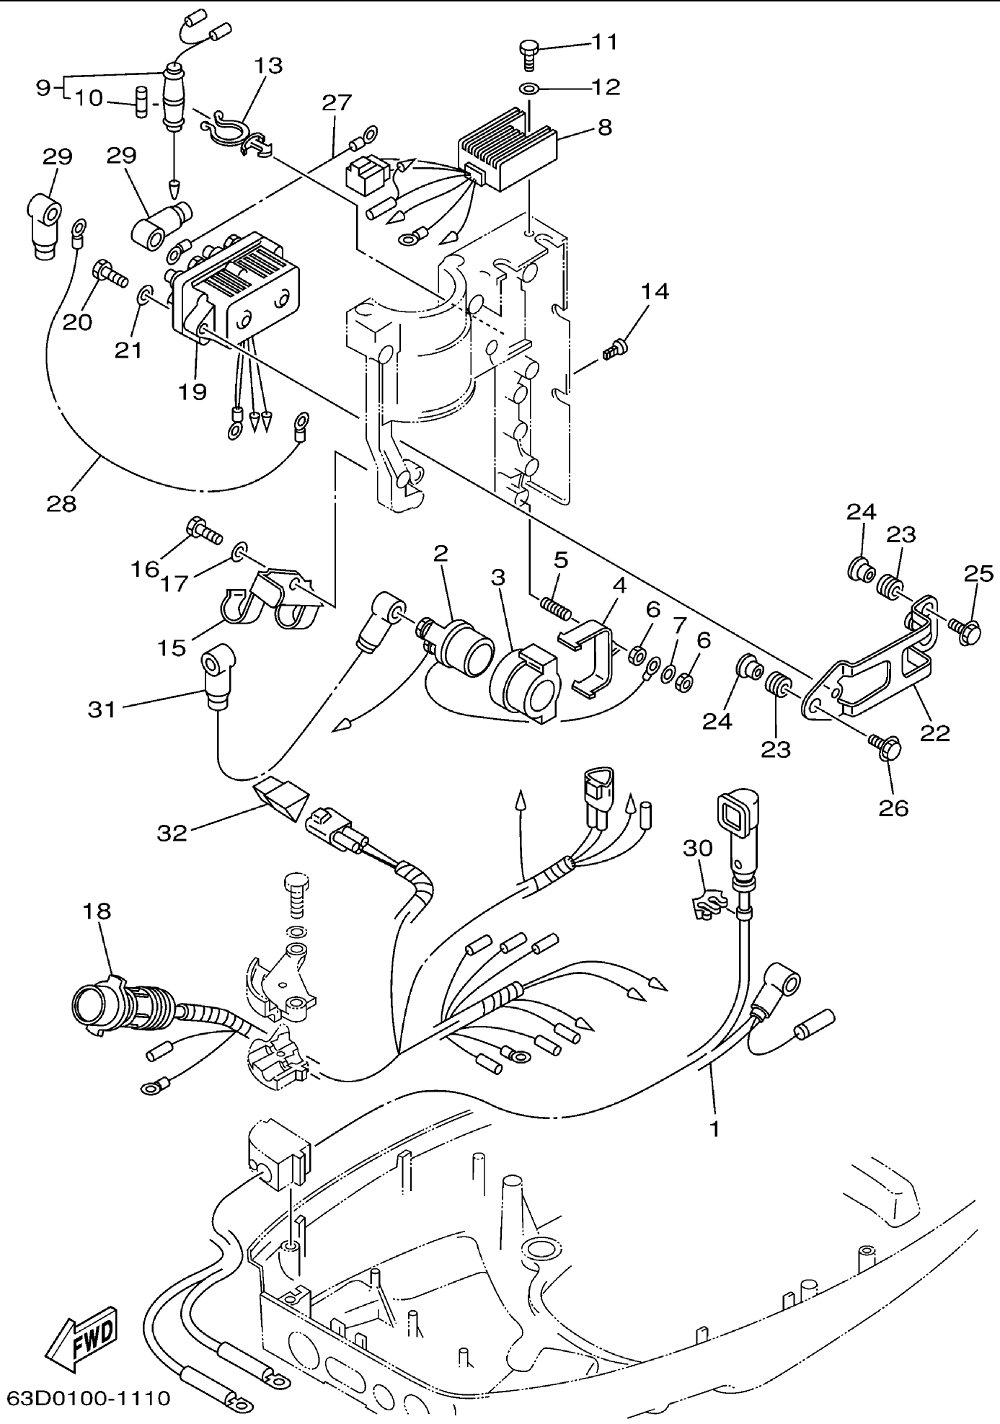 50 Hp Johnson Outboard Wiring Diagram Pdf from schematron.org